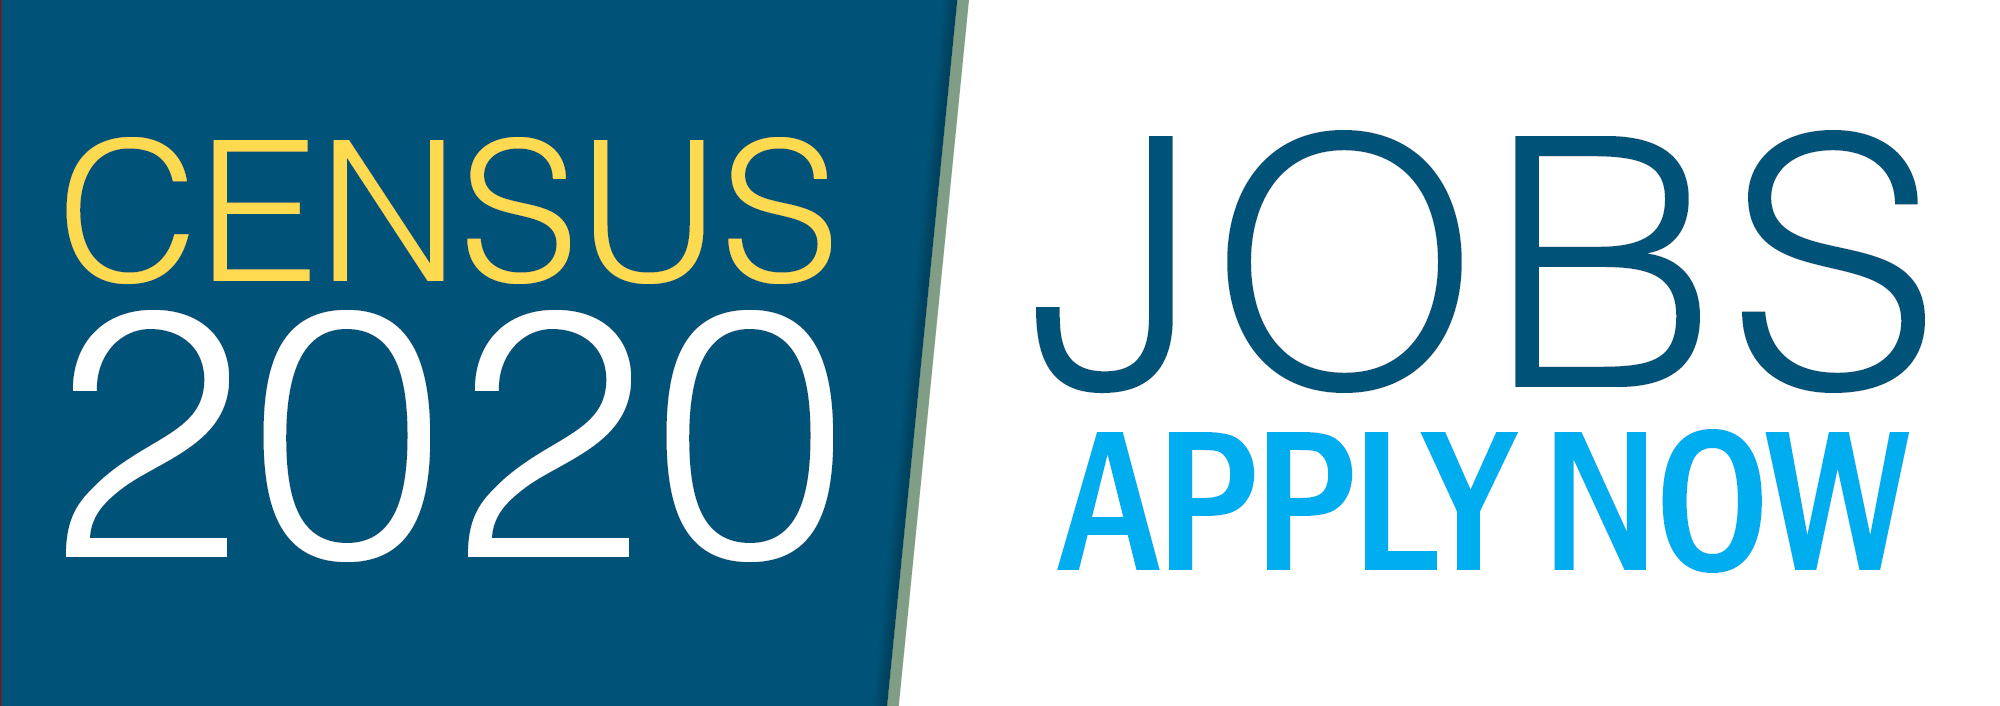 Census 2020 Jobs - Apply Now